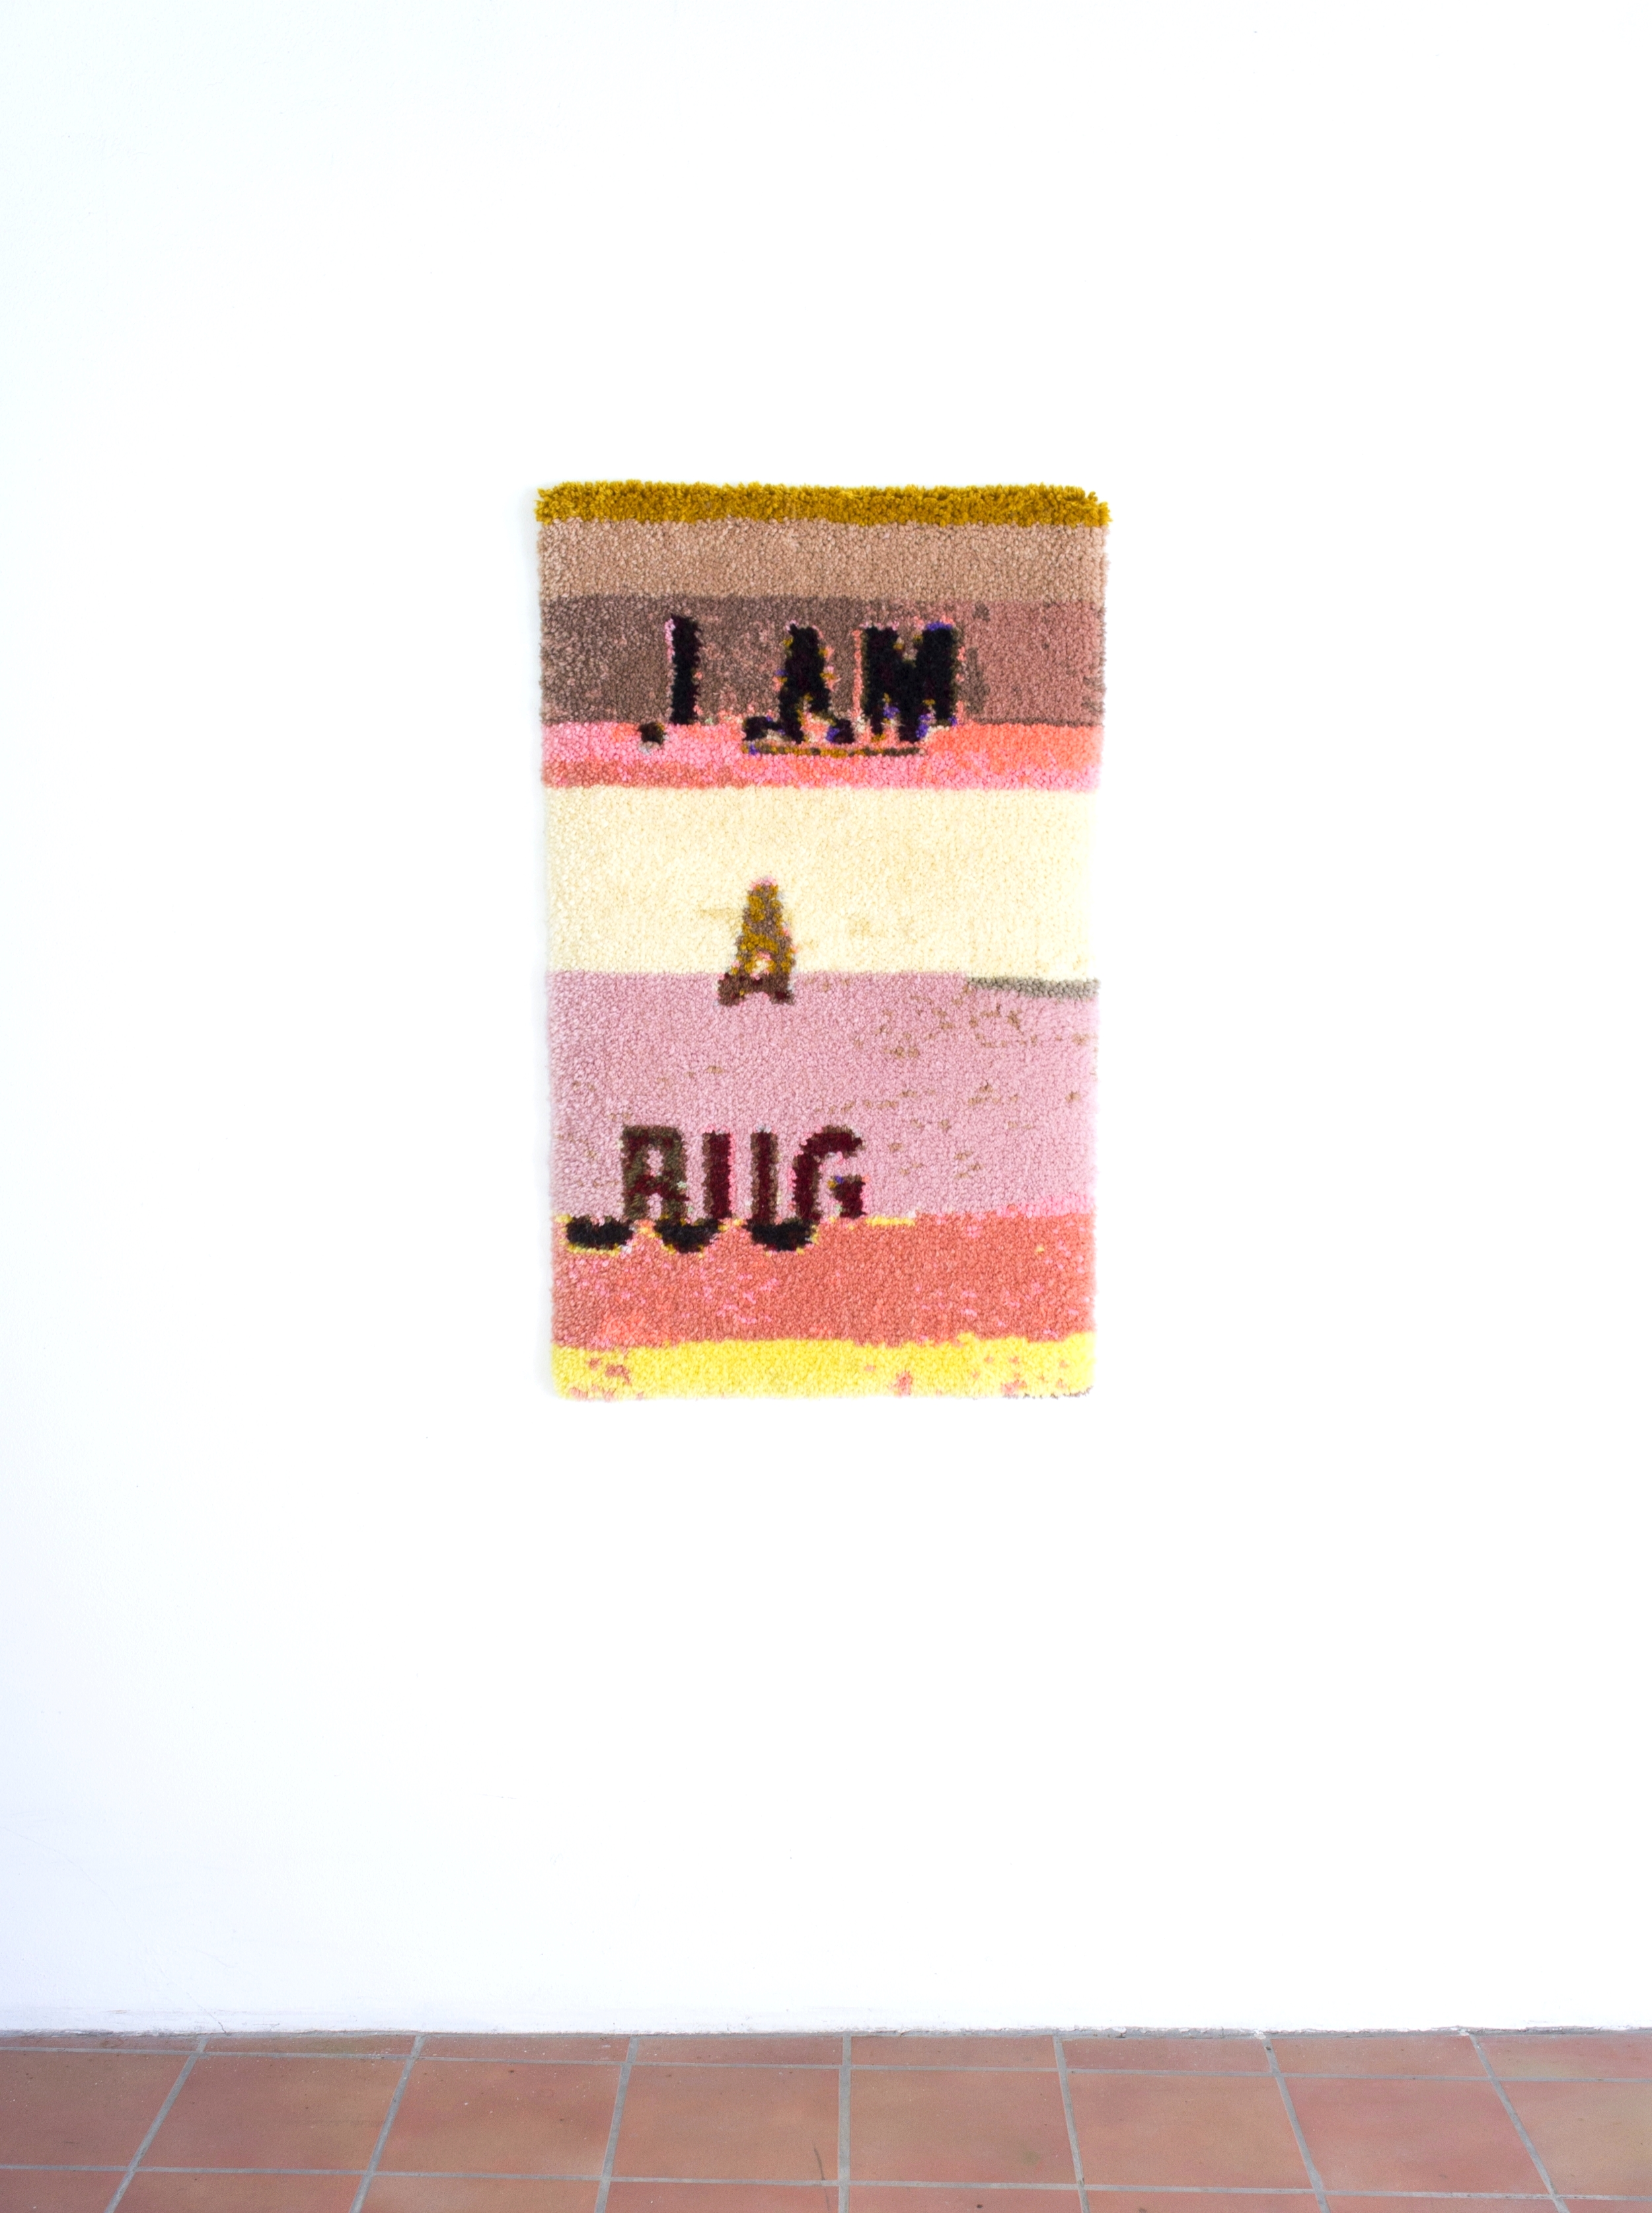 Status Update (BUG), Anchor 6ply wool, latch hook canvas, and cotton, 63 x 92 cm, 2016